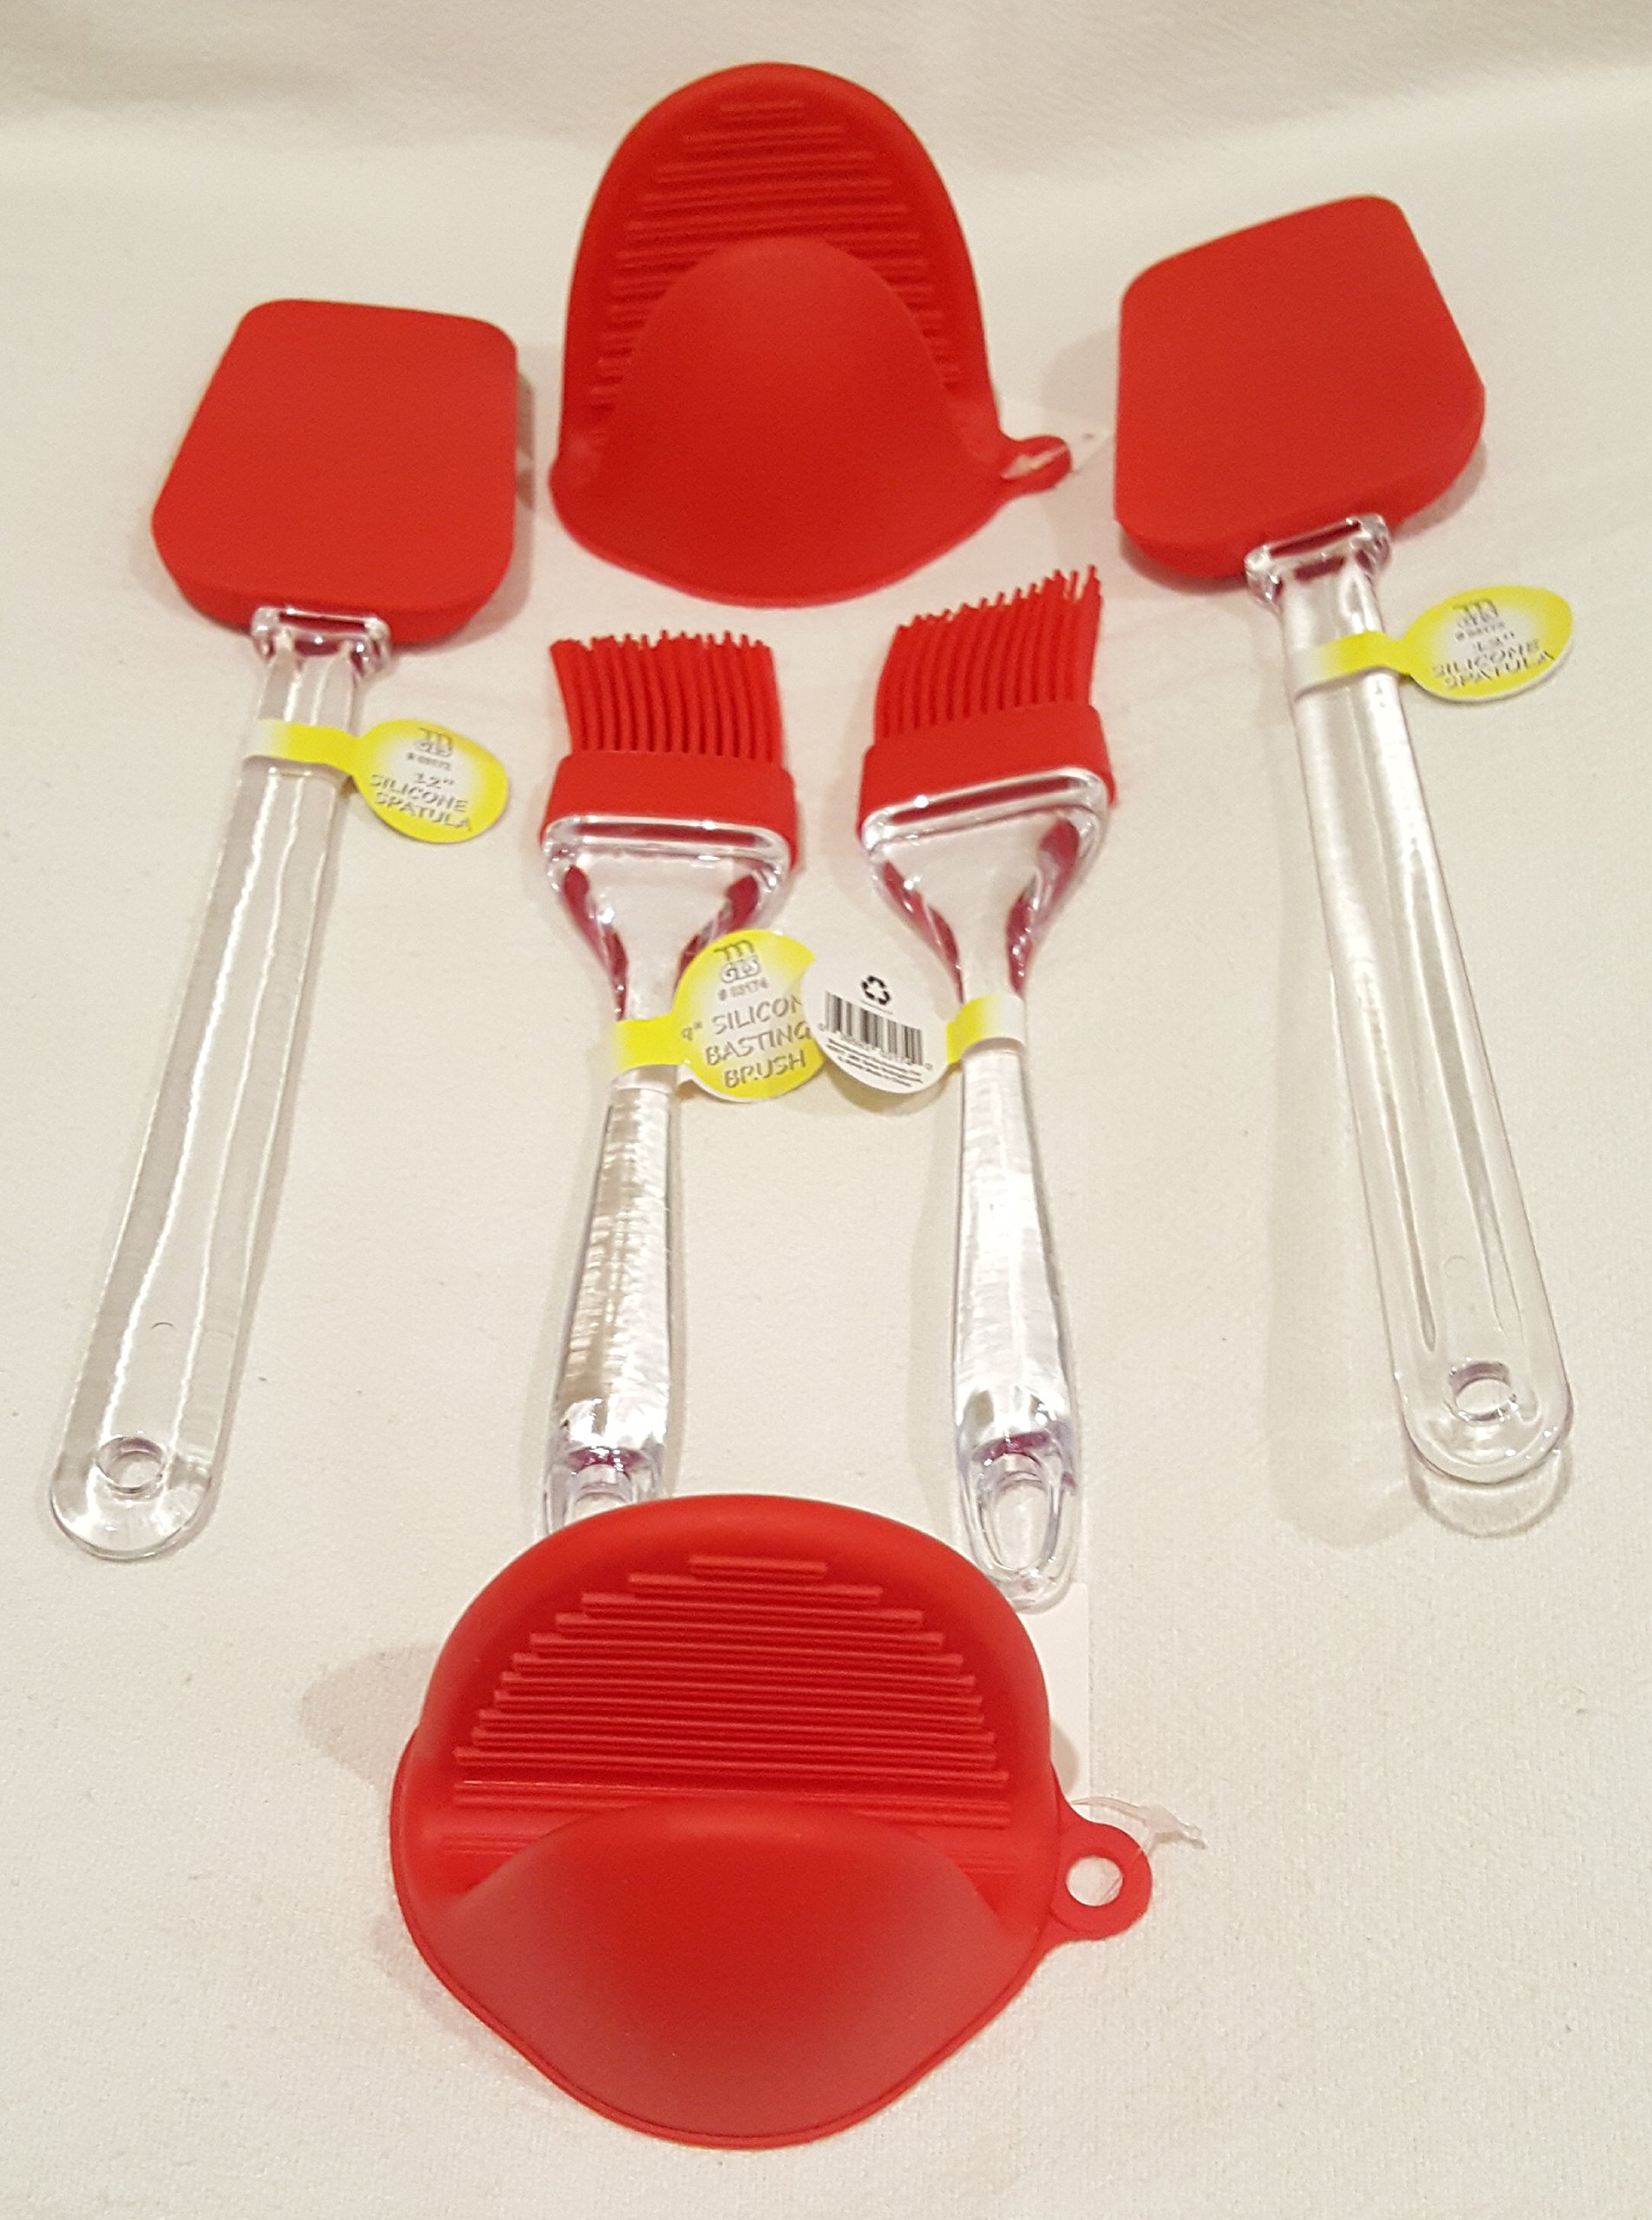 "8-pc Silicone Kitchen Heat Resistant Cookware Sets: 2 Pot holders/Cooking Pinch Mitts, 12"" Spatula (2 pcs.), 9"" Basting Brush (2 pcs.), Silicone-coated Wisks (2 pcs.), Various Colors (15x12)"